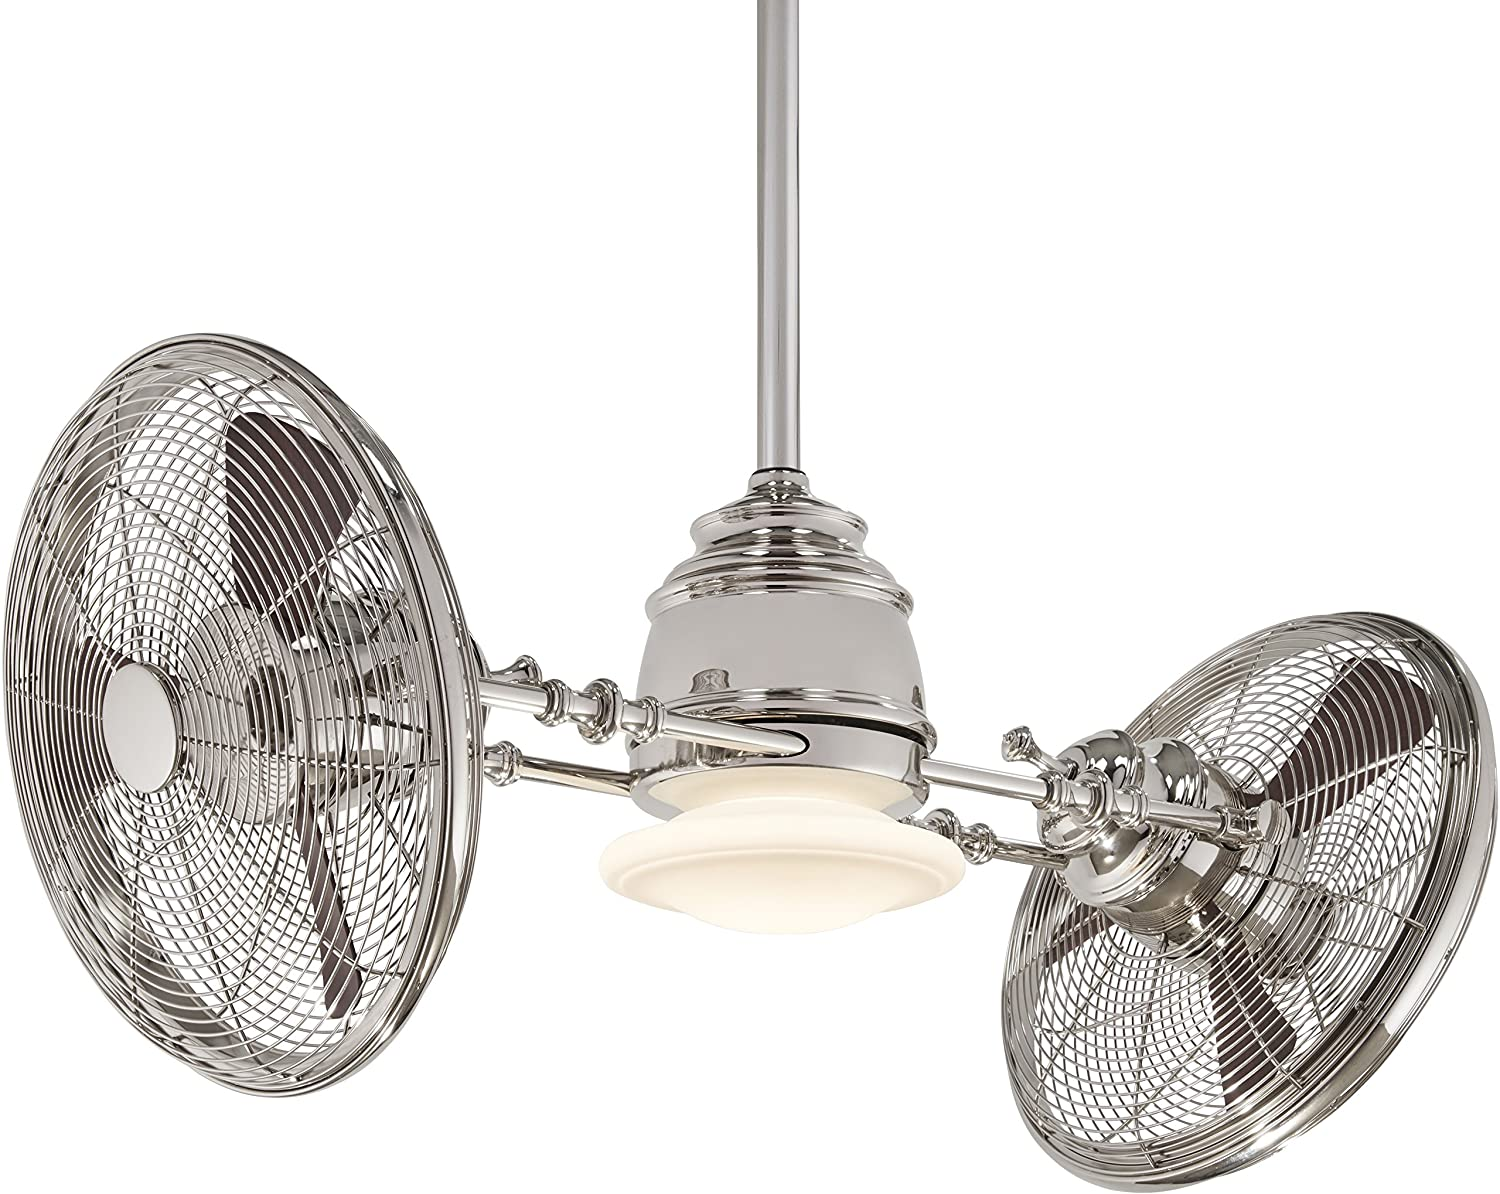 "Minka-Aire F802-PN VINTAGE GYRO 42"" Ceiling Fan in Polished Nickel Finish with Rosewood Blades"